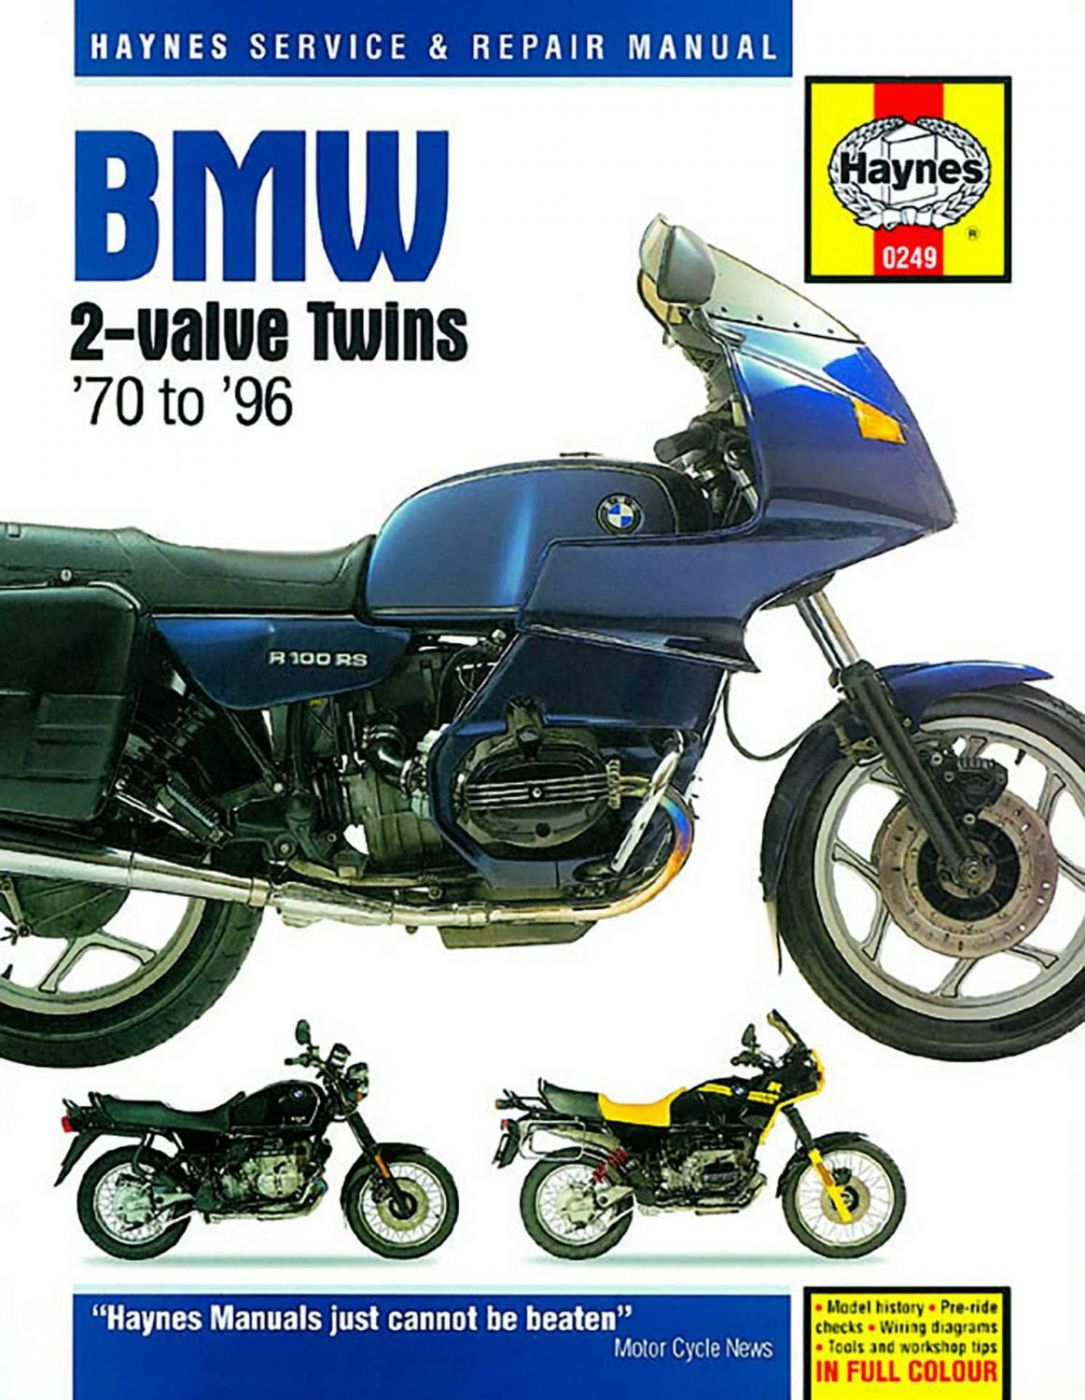 Haynes Manuals - 680249Y image